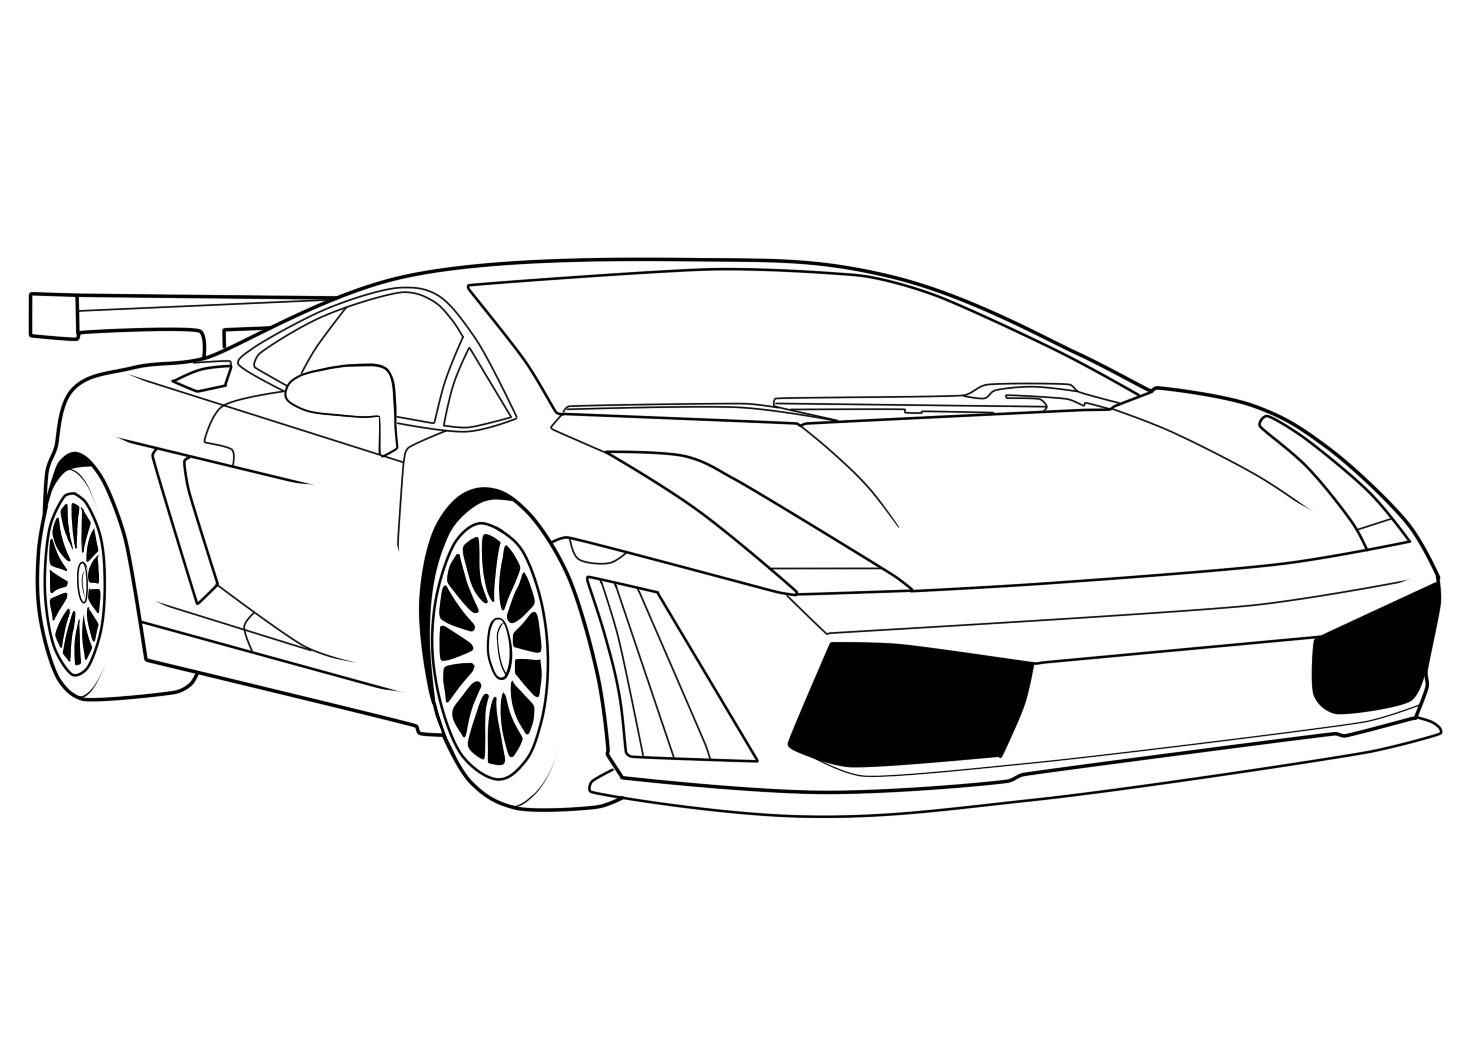 pictures of cars to print and colour cars coloring pages cool2bkids to cars pictures print colour and of